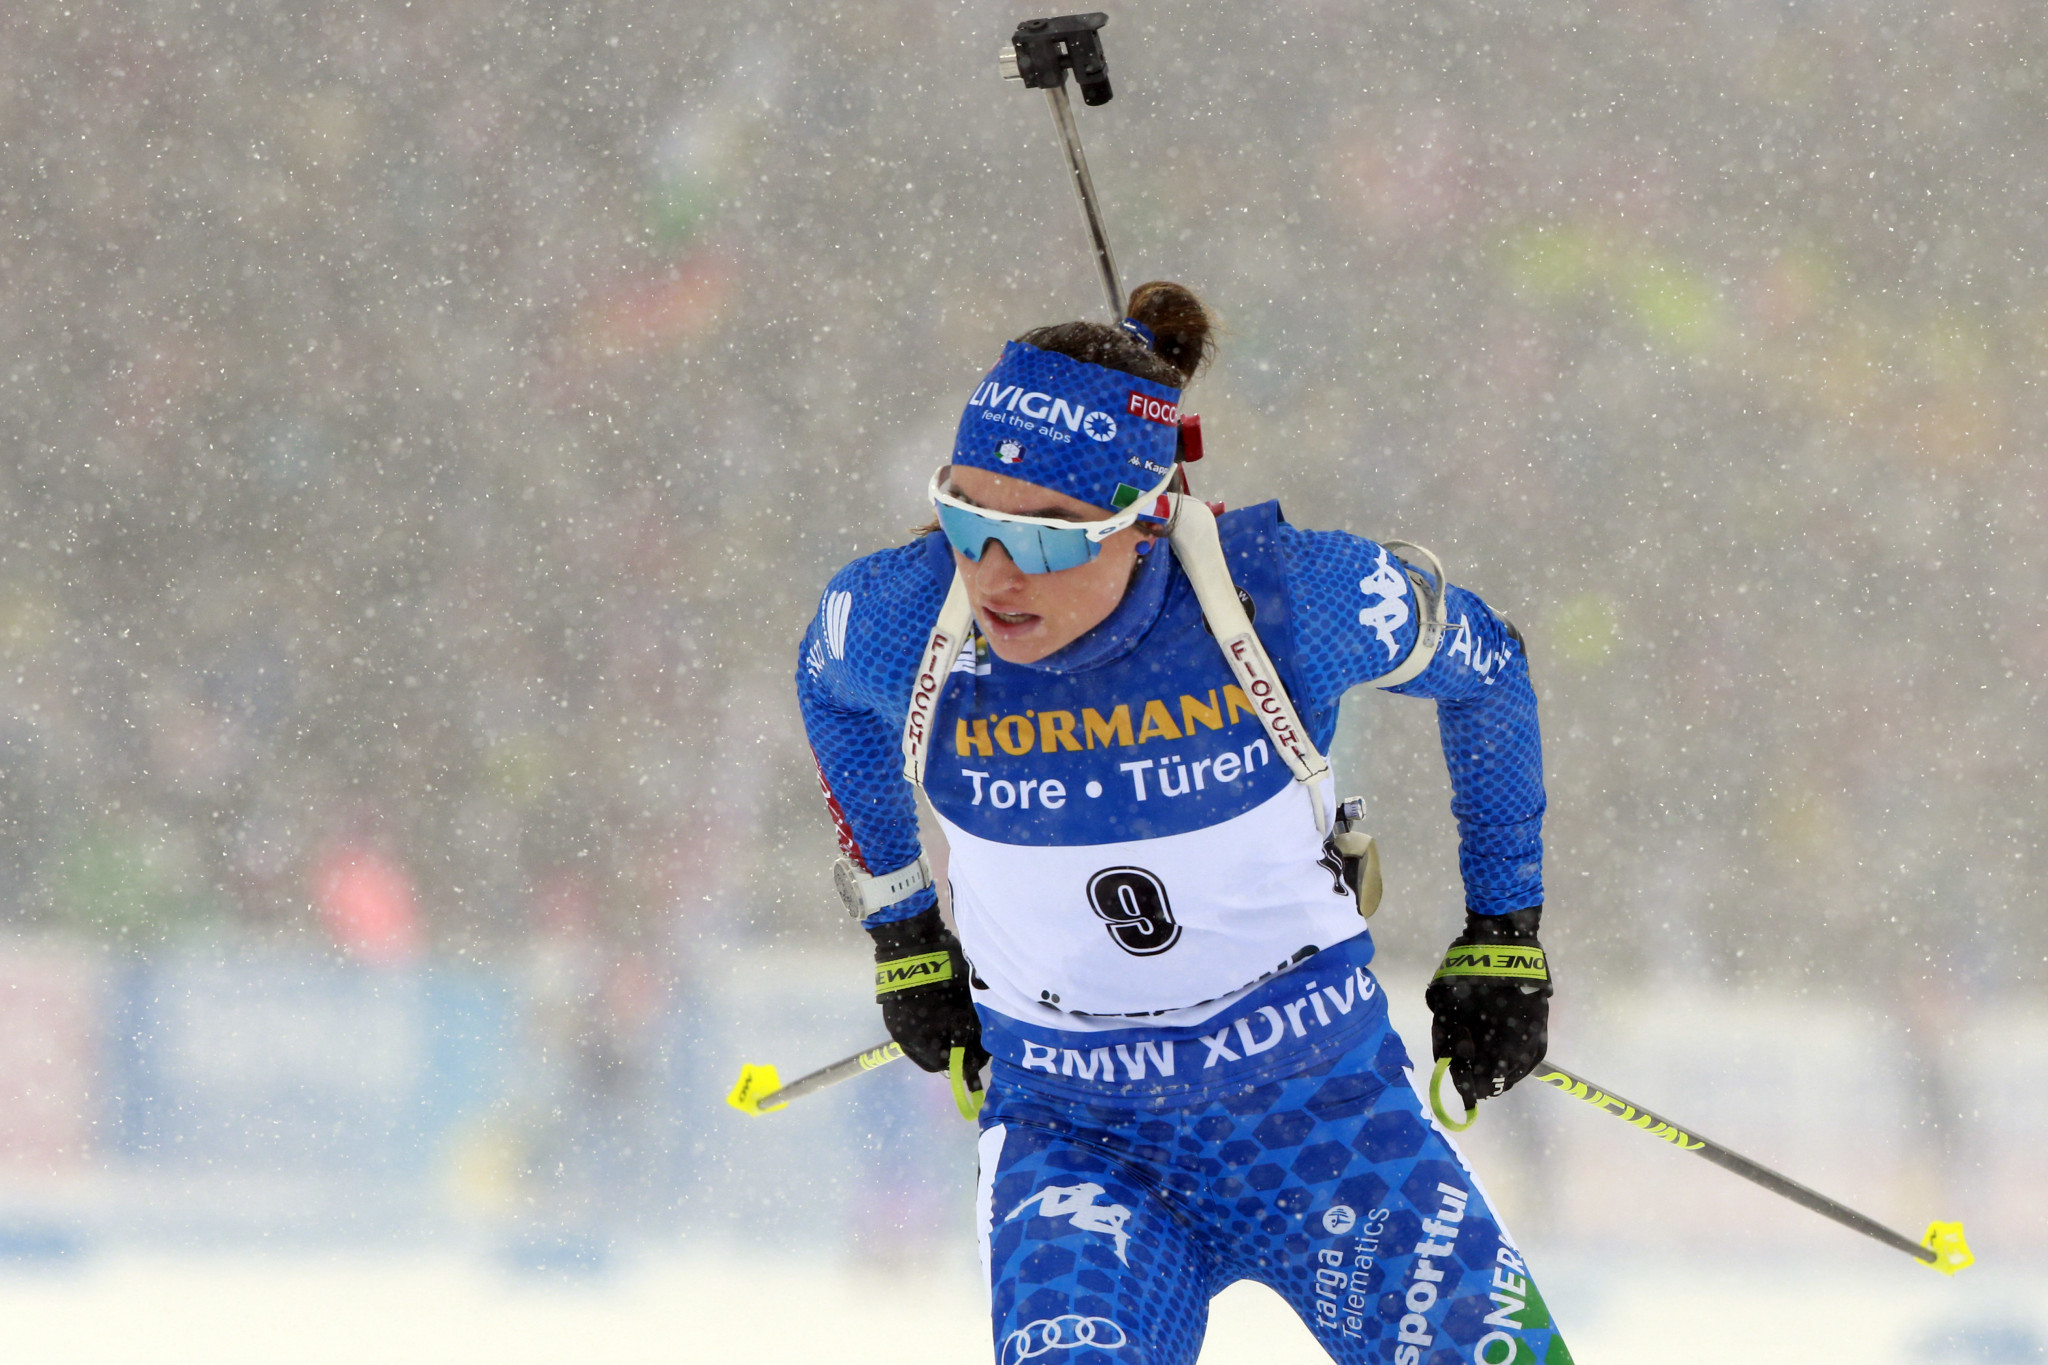 Dorothea Wierer will defend her overall women's crown ©Getty Images